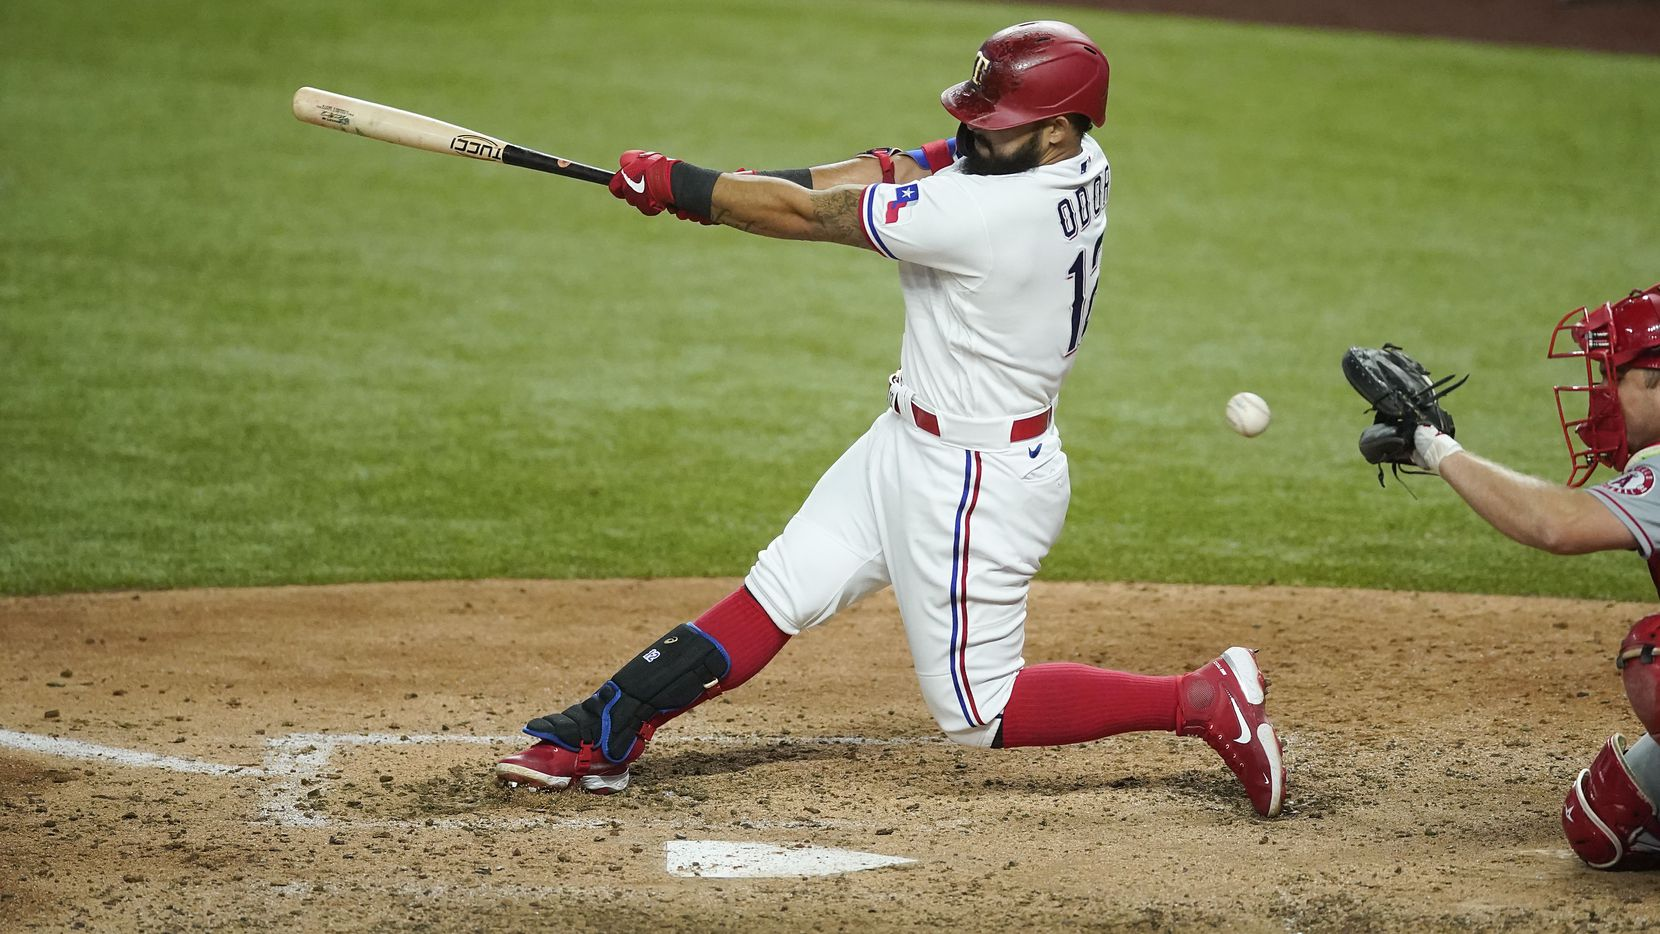 Texas Rangers second baseman Rougned Odor strikes out swinging to end the sixth inning against the Los Angeles Angels at Globe Life Field on Saturday, Aug. 8, 2020.